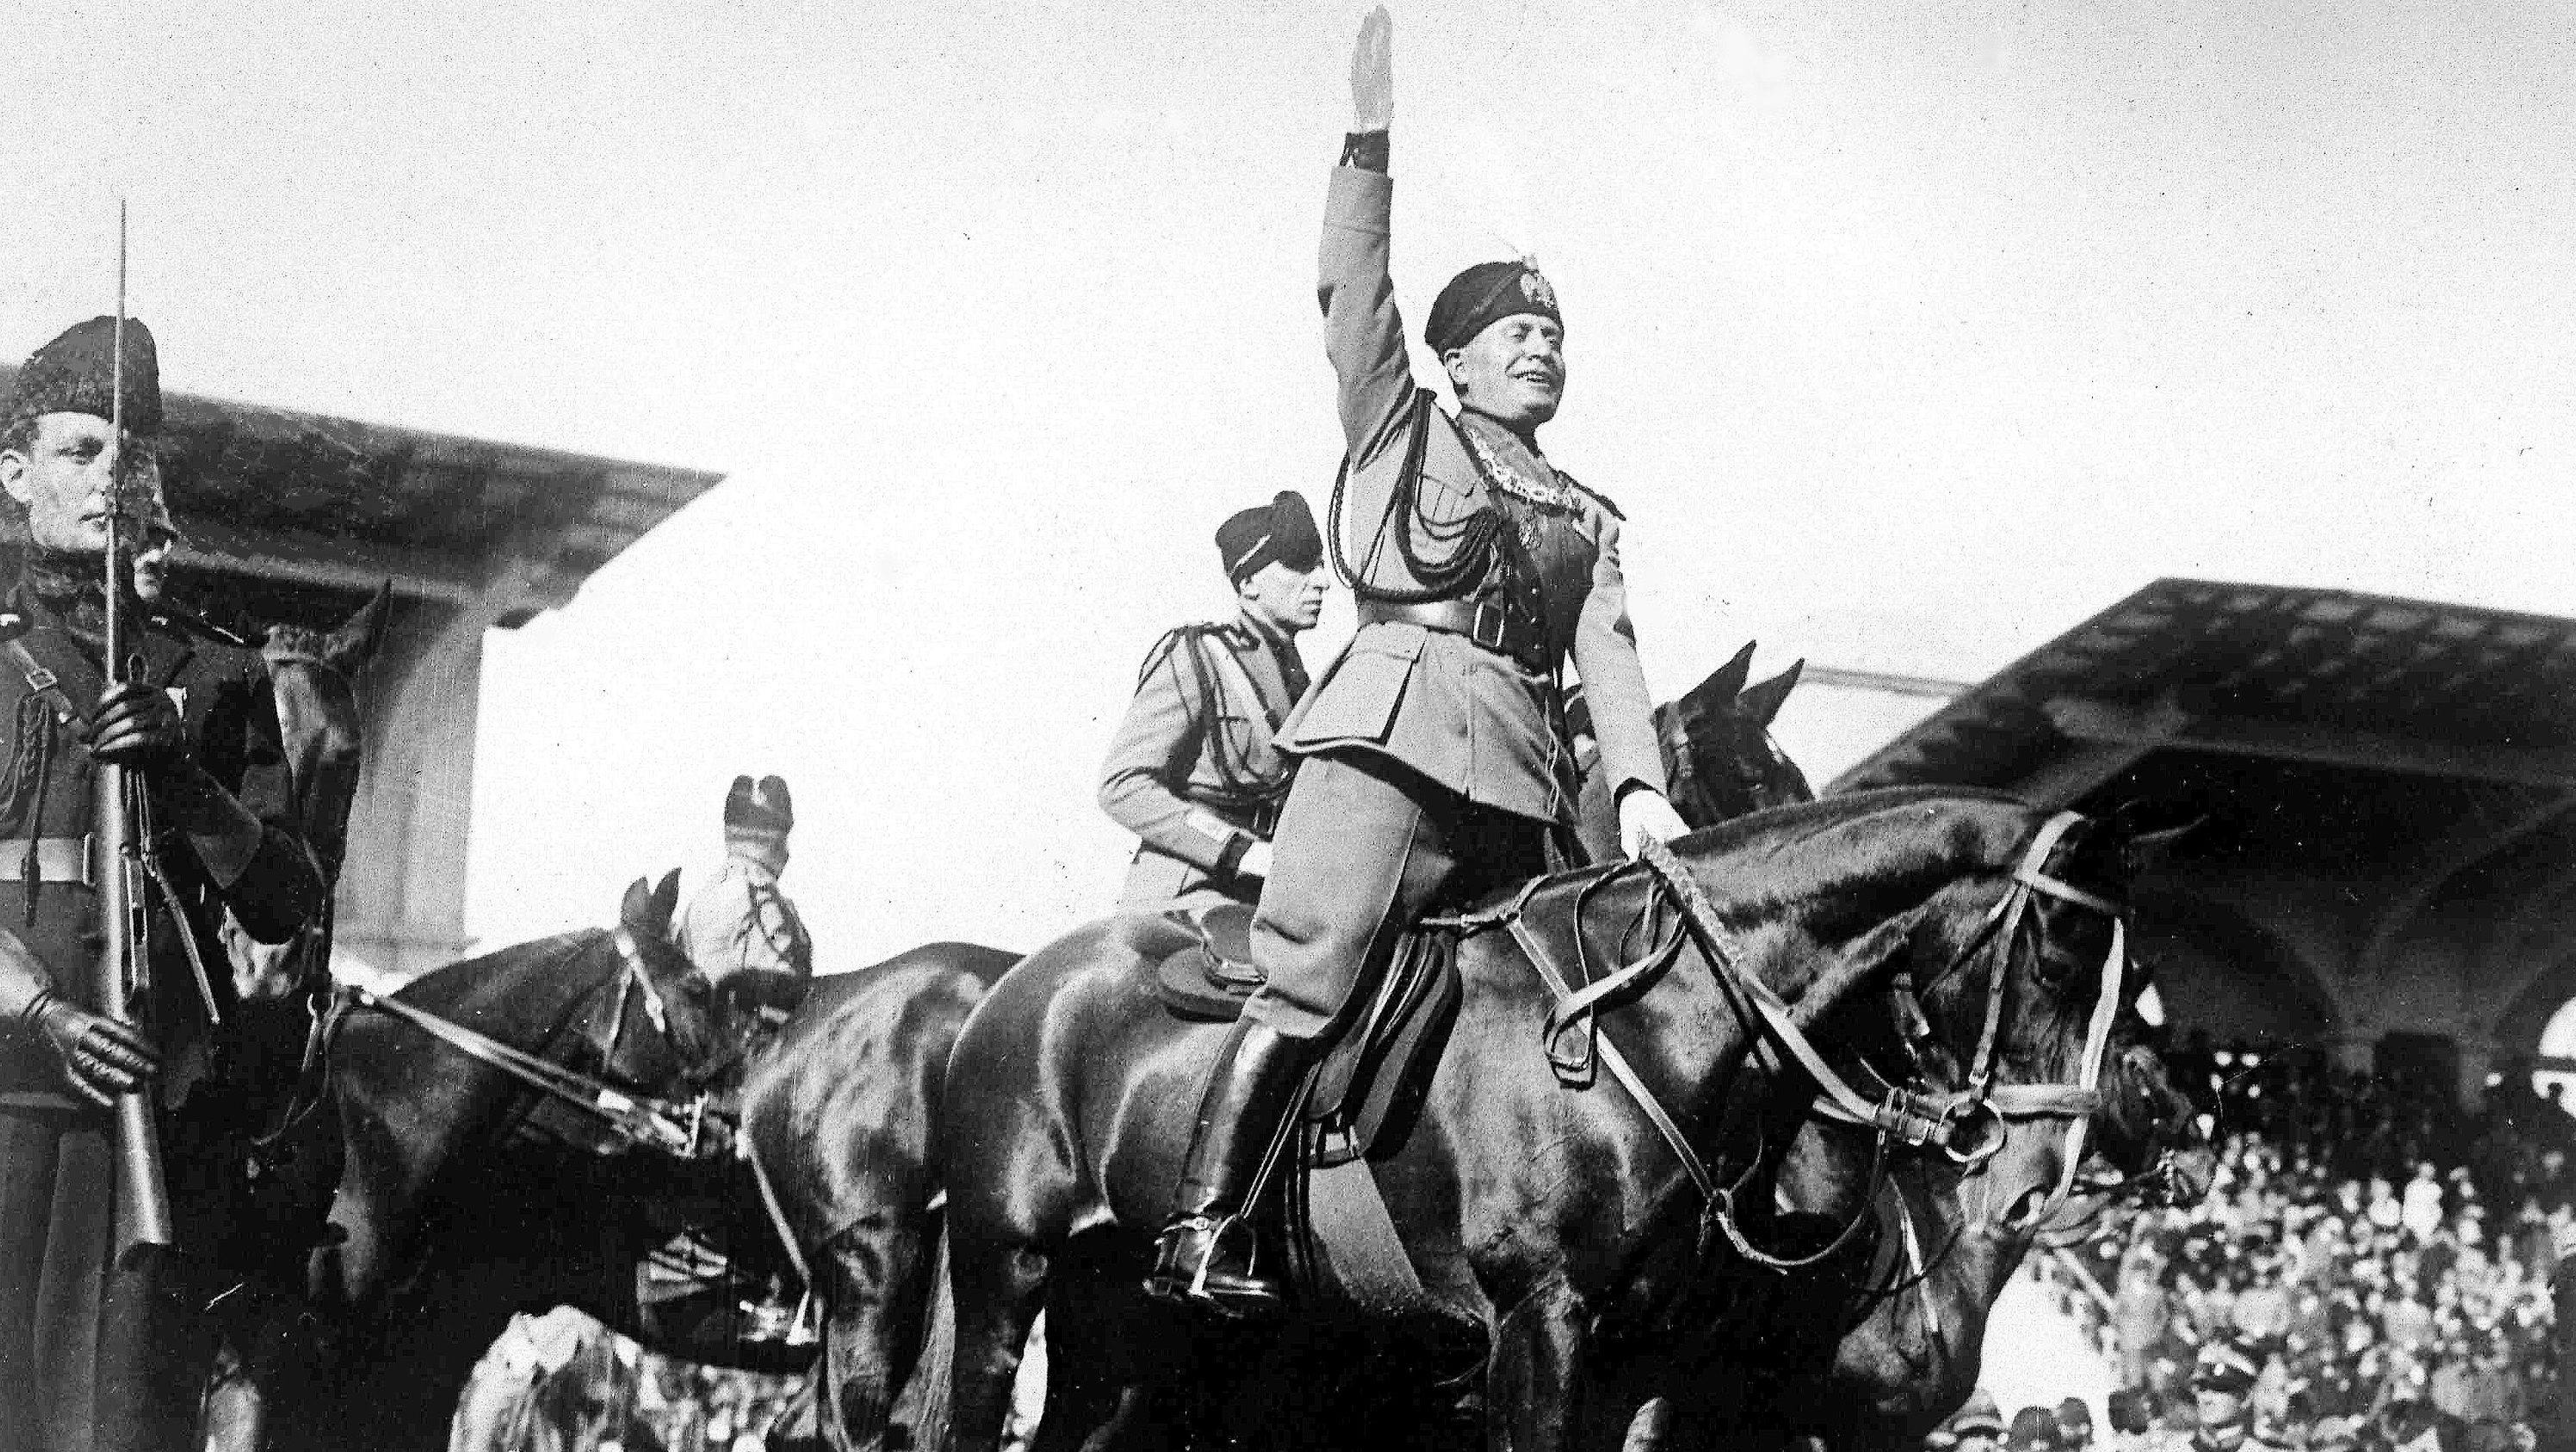 Italian dictator and Prime Minister Benito Mussolini, centre, on horseback salutes a review of fascists, somewhere in Italy, Oct. 1927. (AP Photo)